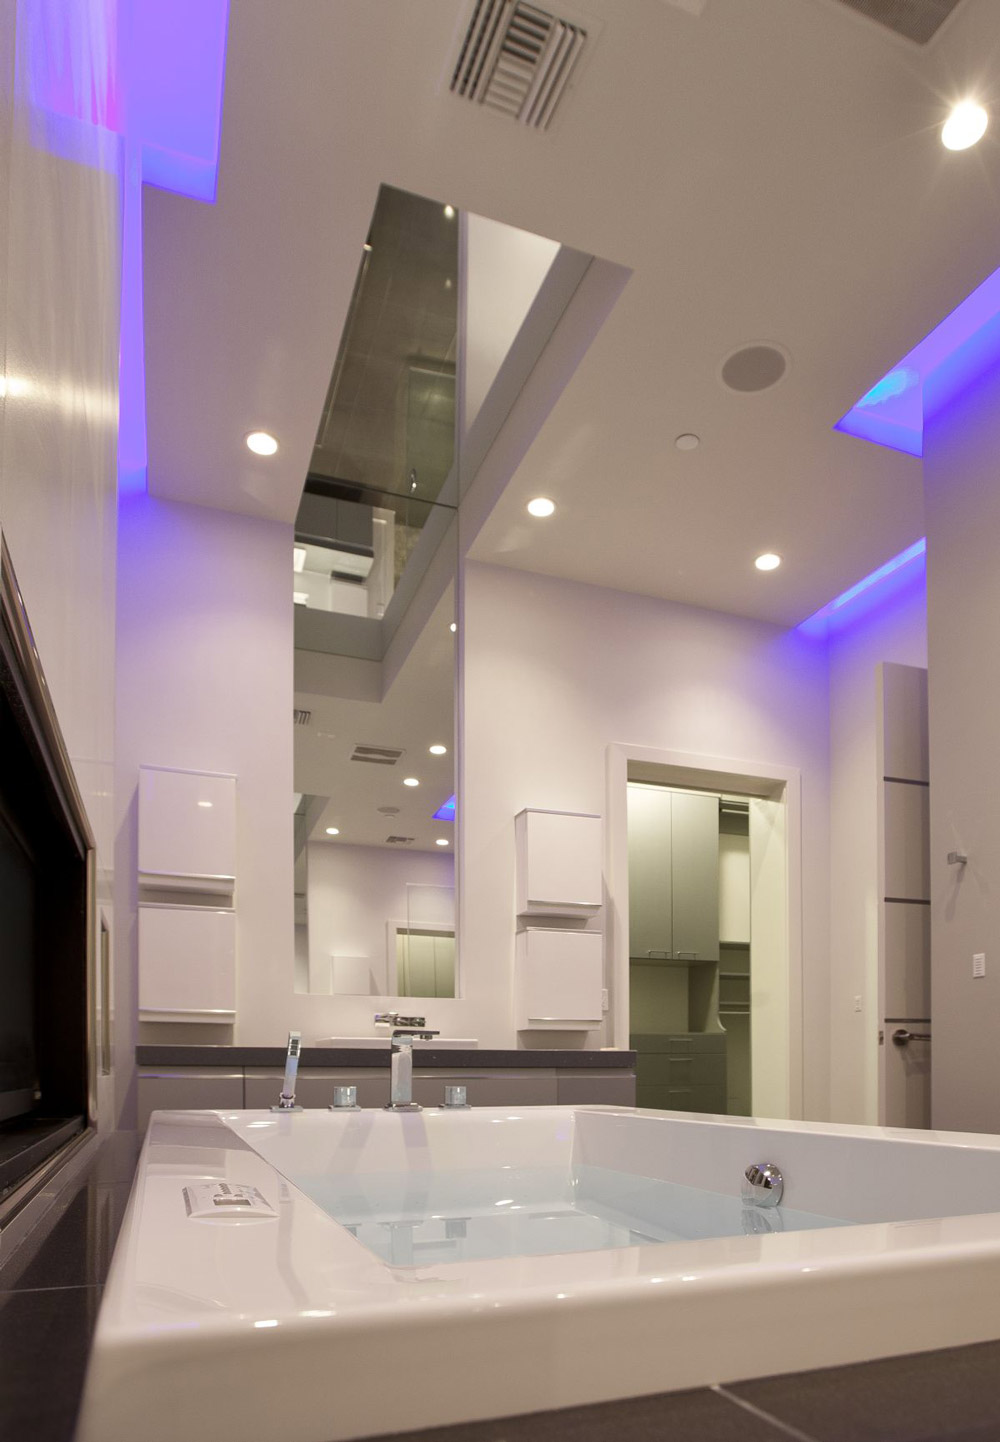 Bathroom, Large Mirror, Blue LED Lighting, Hurtado ...